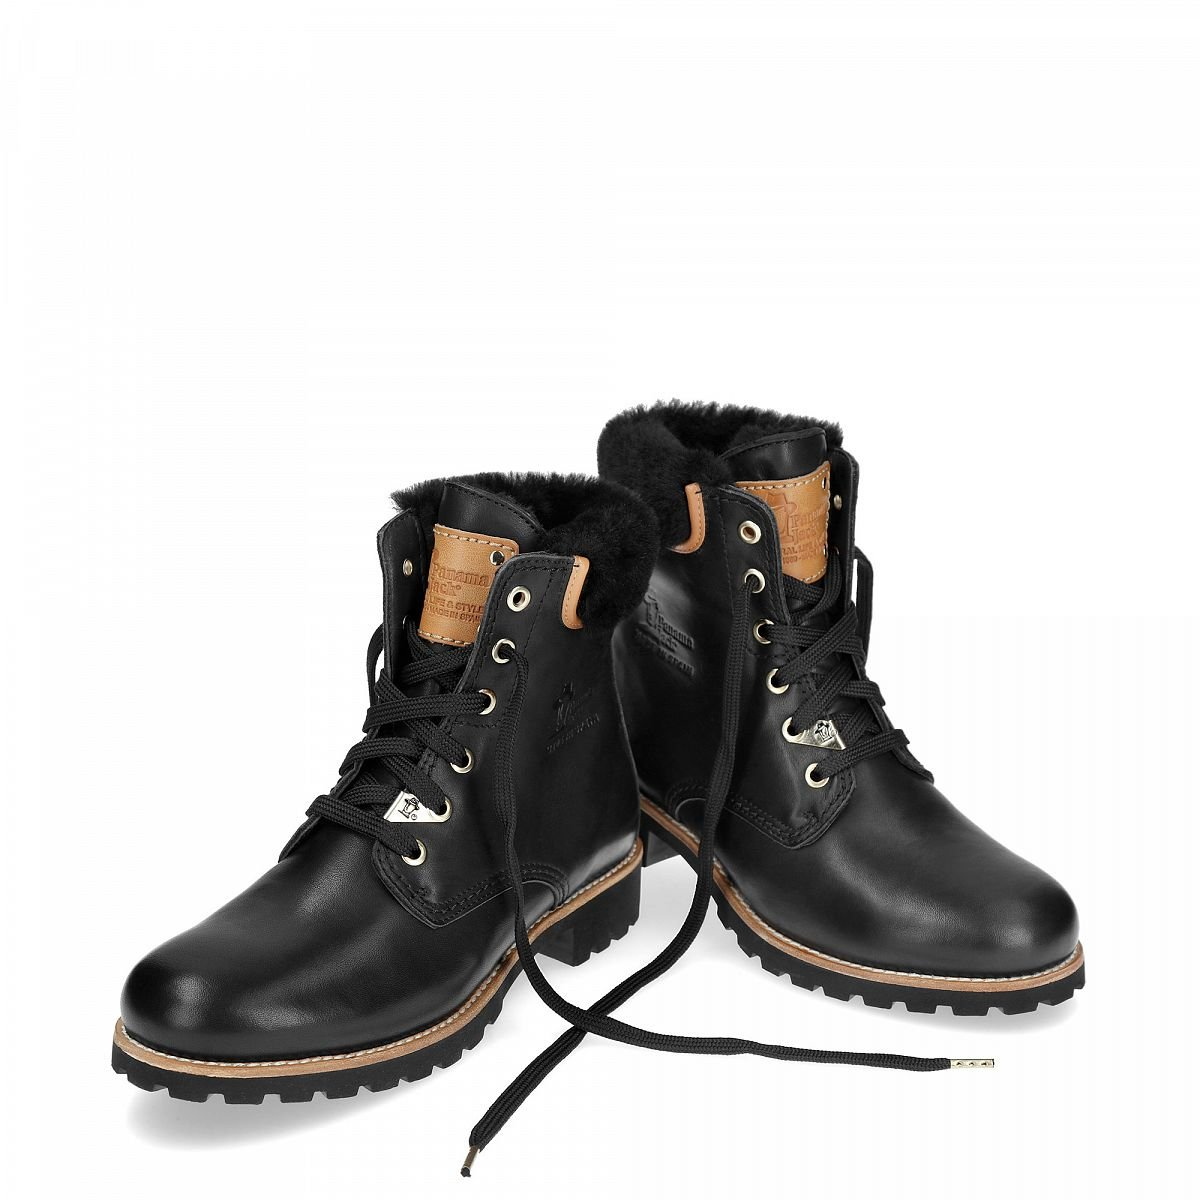 5ce3eaeeb60cc1 Women s boot PANAMA 03 IGLOO TRAVELLING black